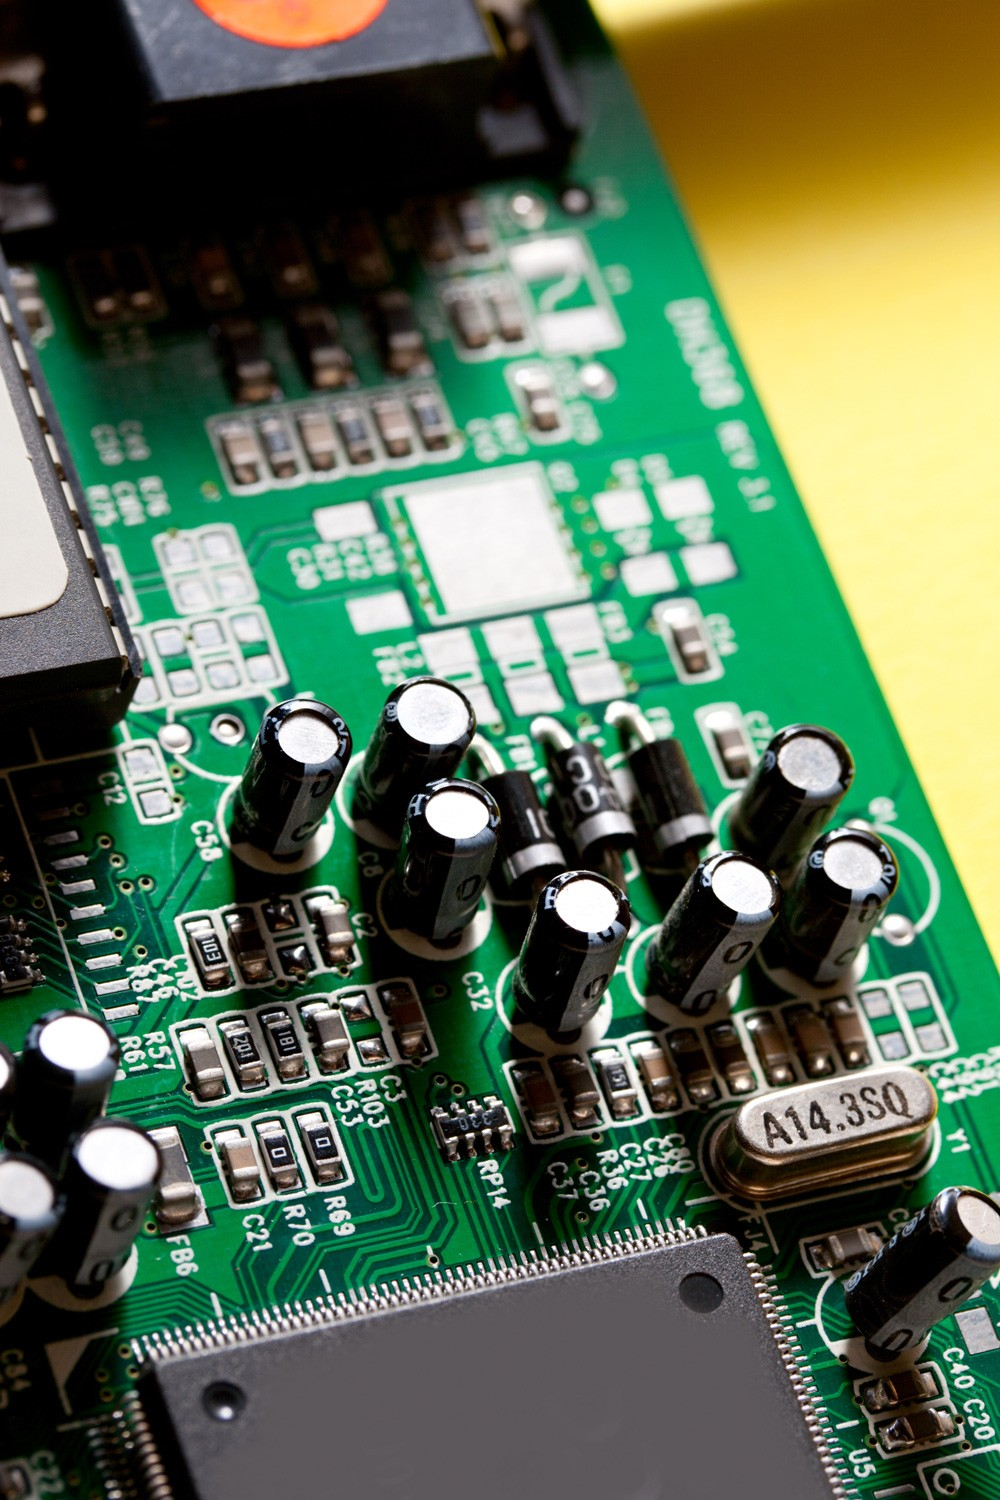 Electronic Pcba Circuit Board Assembly From Chinas Professional Pcb Our Fai Aoi Axi And Many Other Custom Inspection Options Will Help Guarantee The Quality Of Your